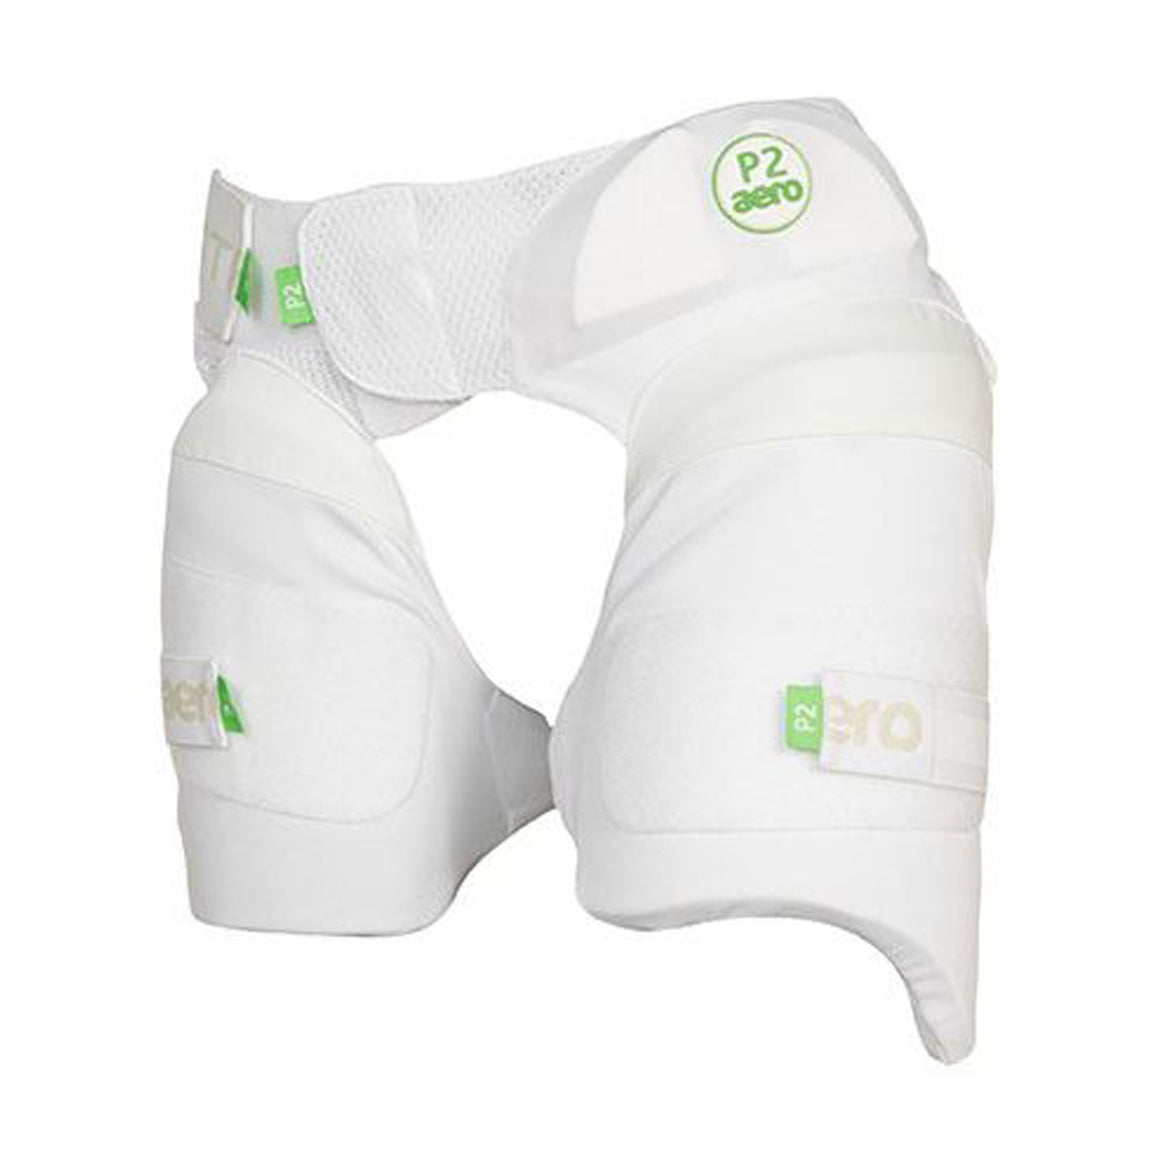 P2 Strippers Cricket Lower Body Protectors R/H in White